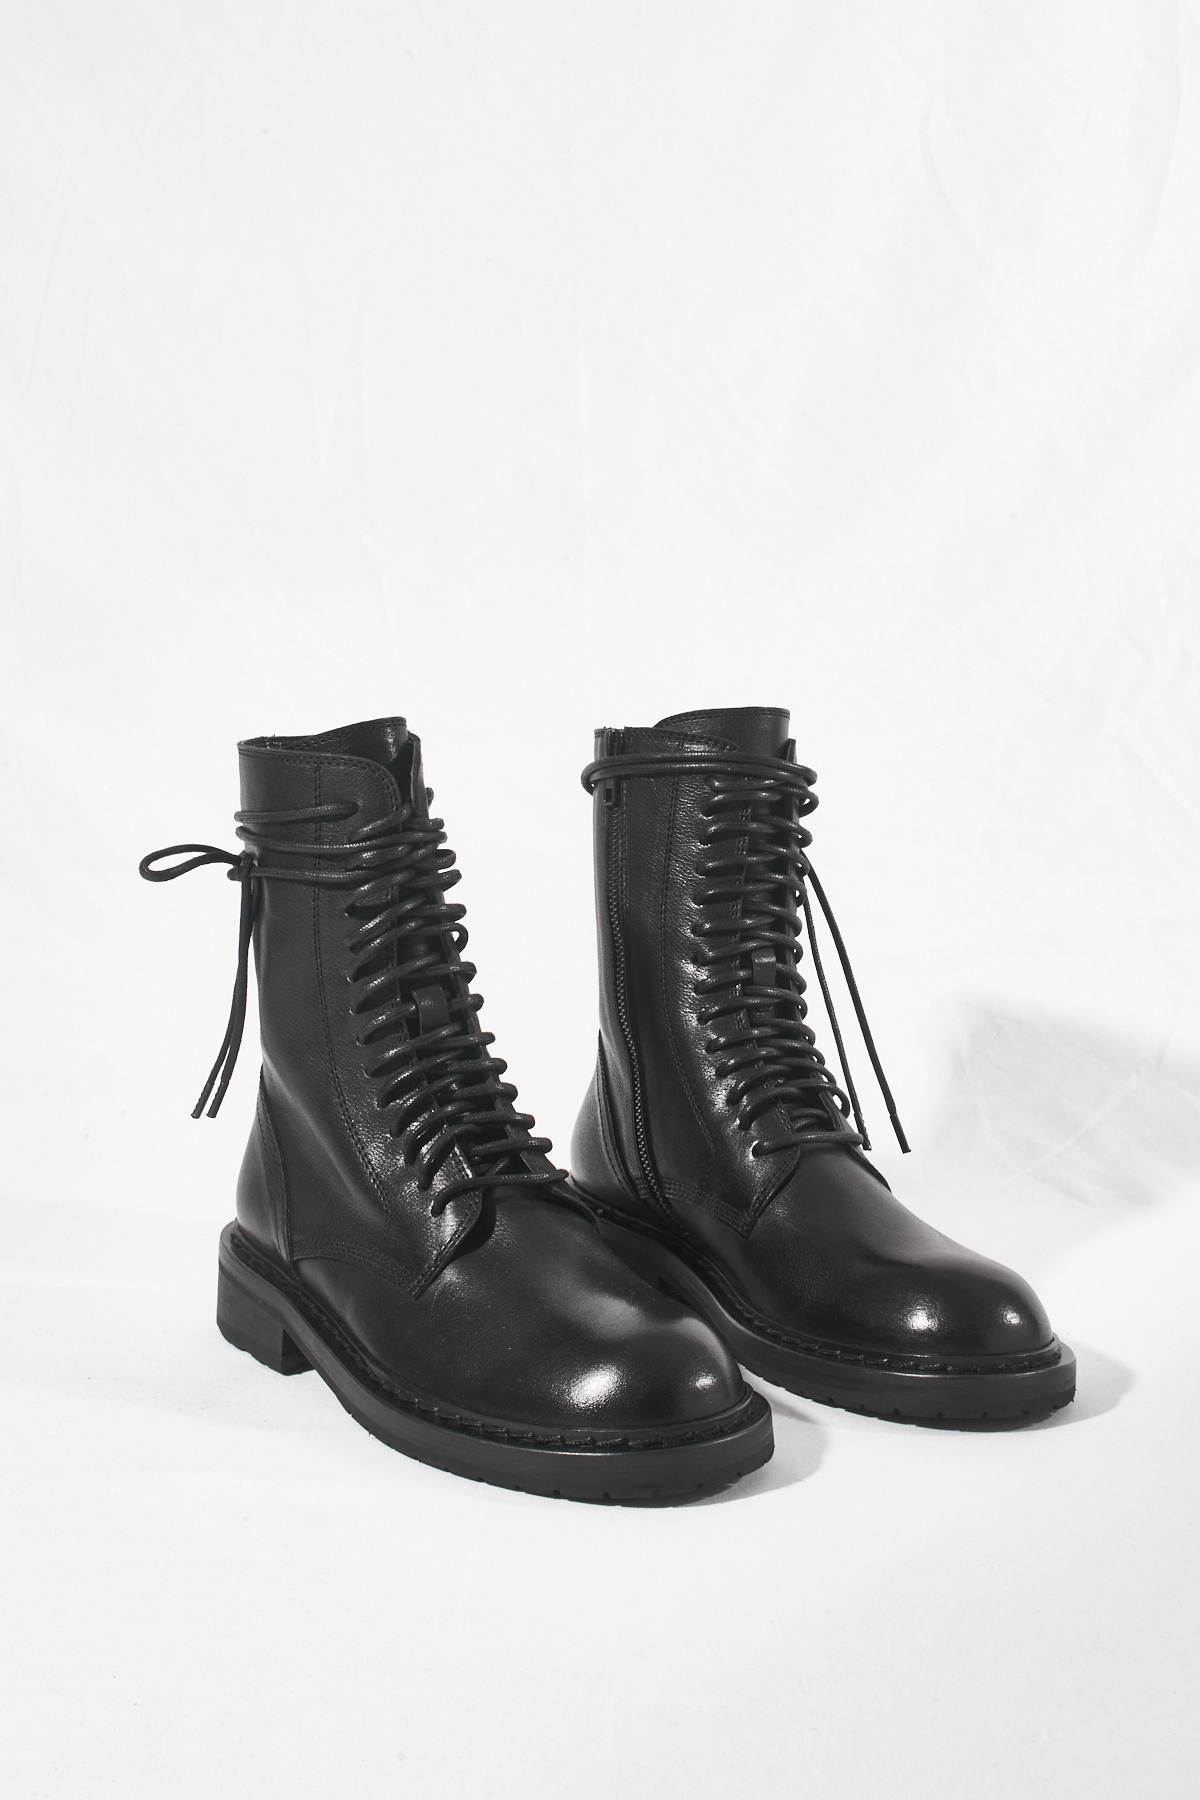 Ann Demeulemeester shoes are a top-10 seller at Antonioli stores.